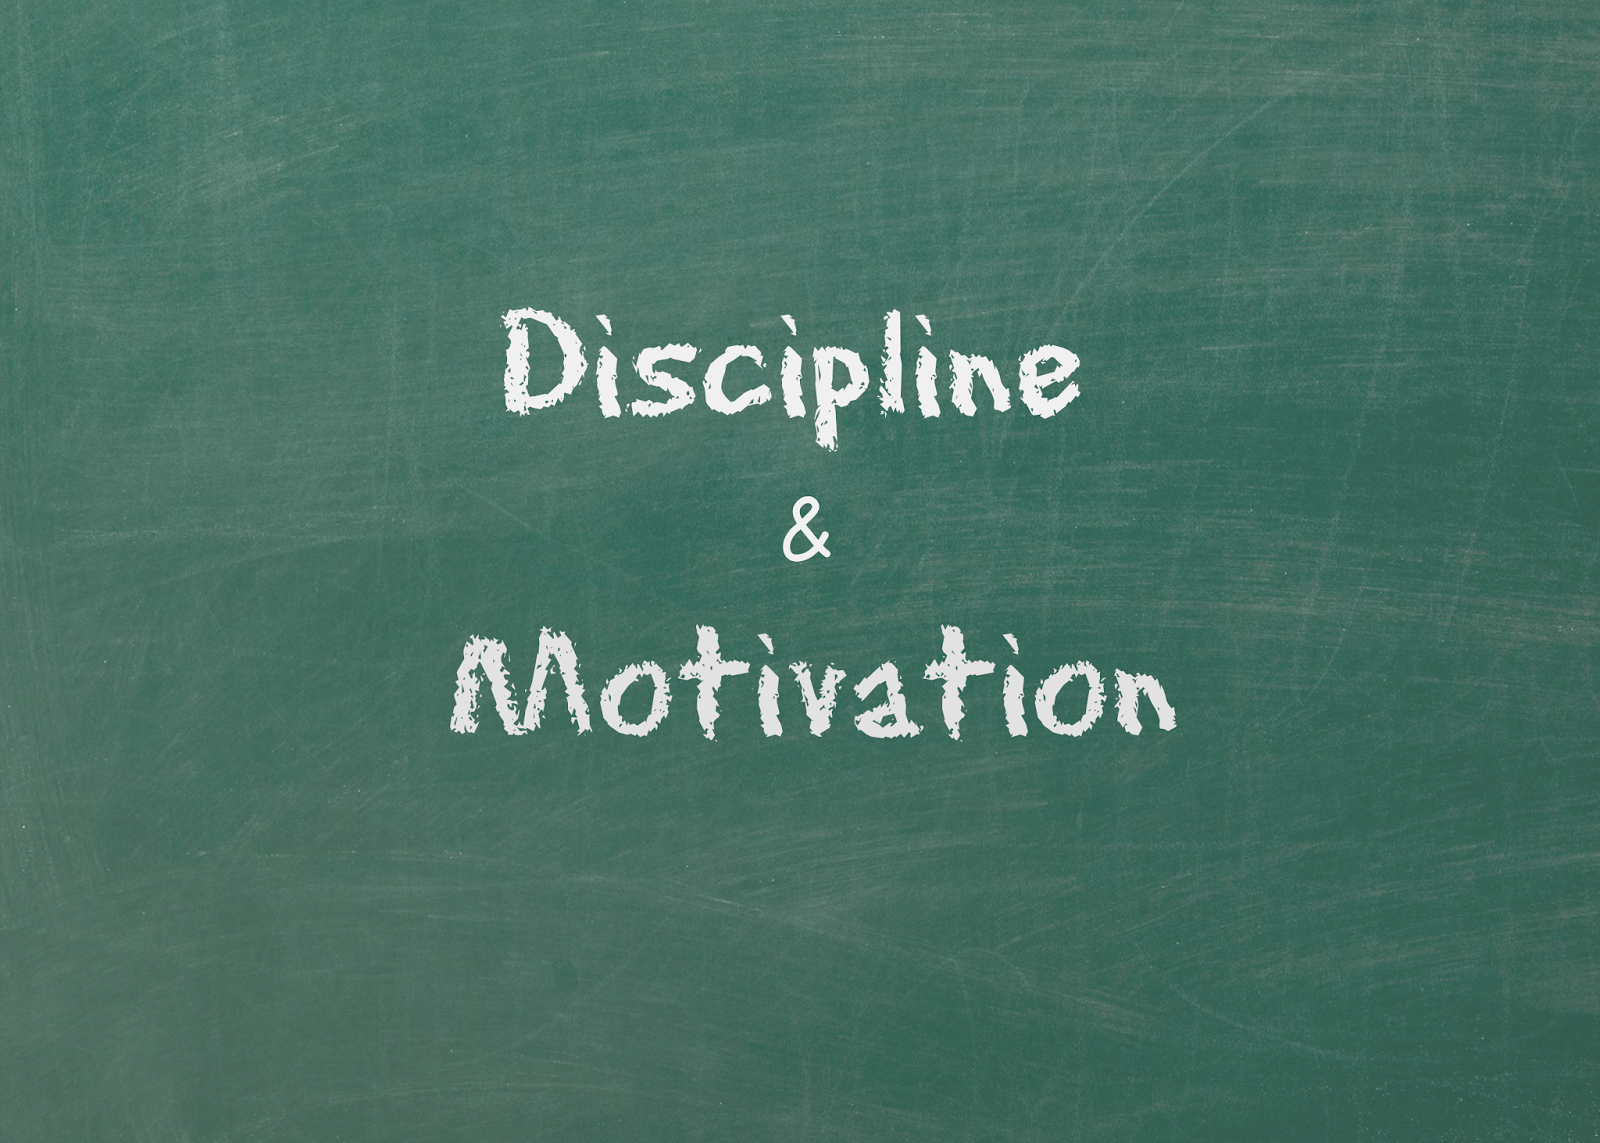 motivation and discipline This is a series of 3 articles looking at self discipline, willpower and motivation self discipline – taming the lazy monkey every morning i have a freezing cold shower, why because part of my mind says 'don't do it, it's just stupid' and that same part of my mind give's lots of different reasons not to do it each morning i fight that inner voice and discipline.